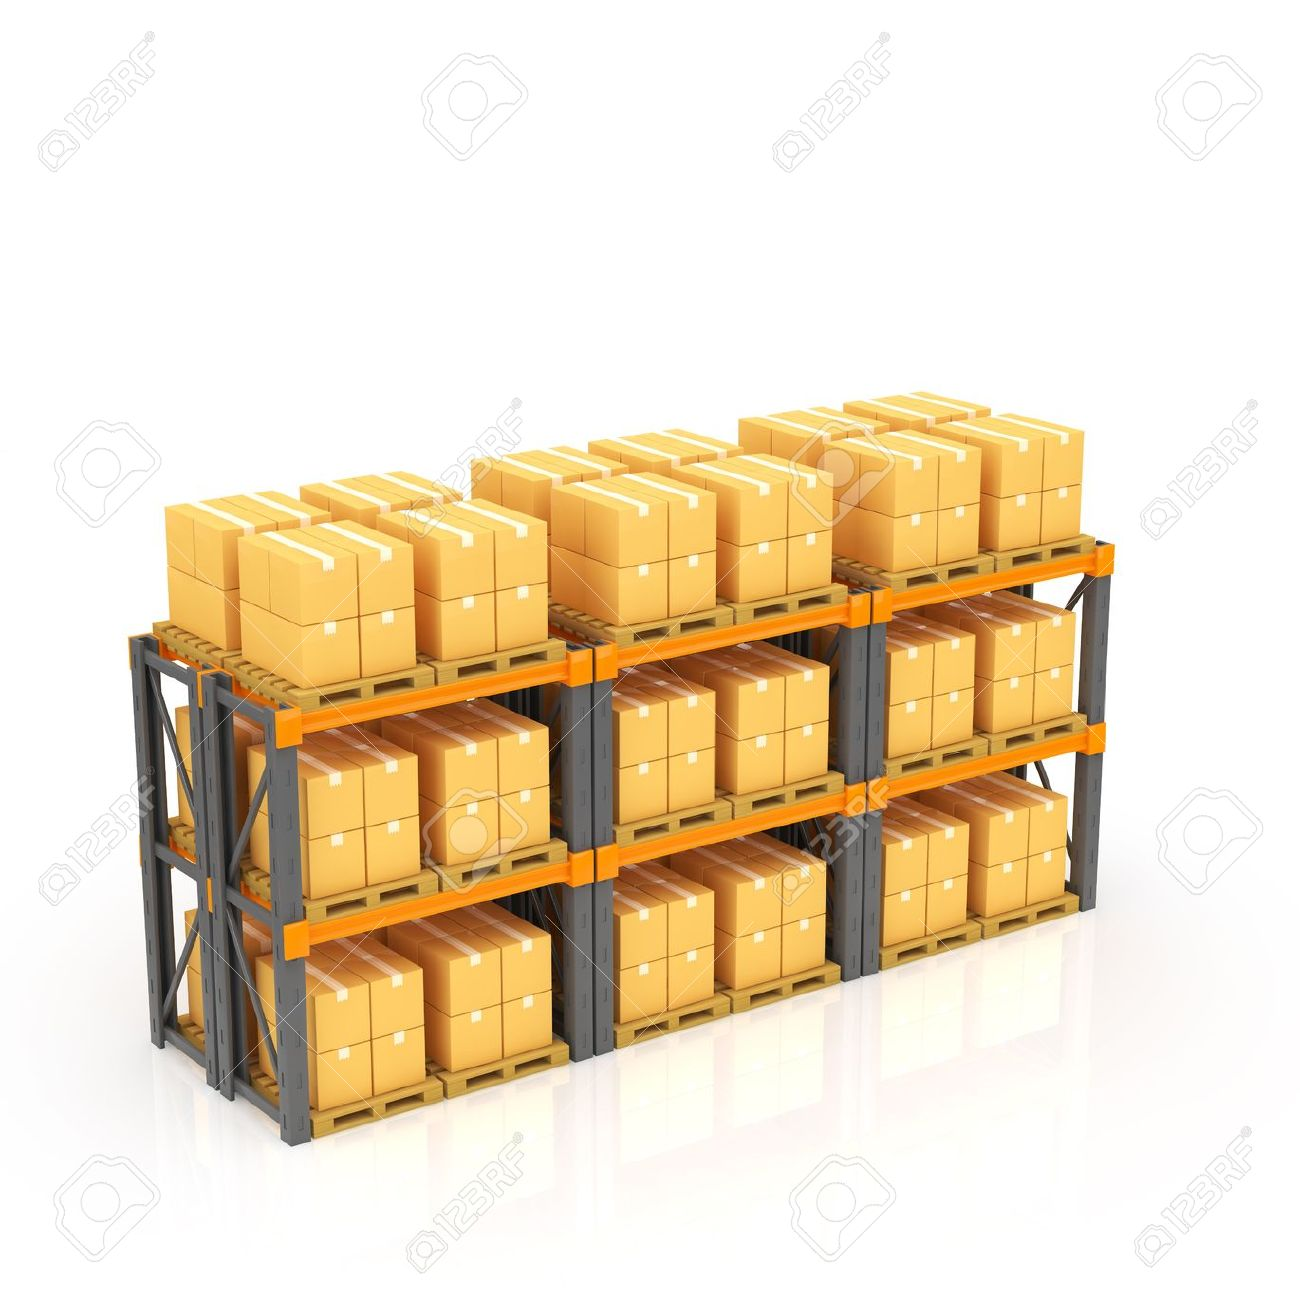 101 Racking Stock Illustrations, Cliparts And Royalty Free Racking.